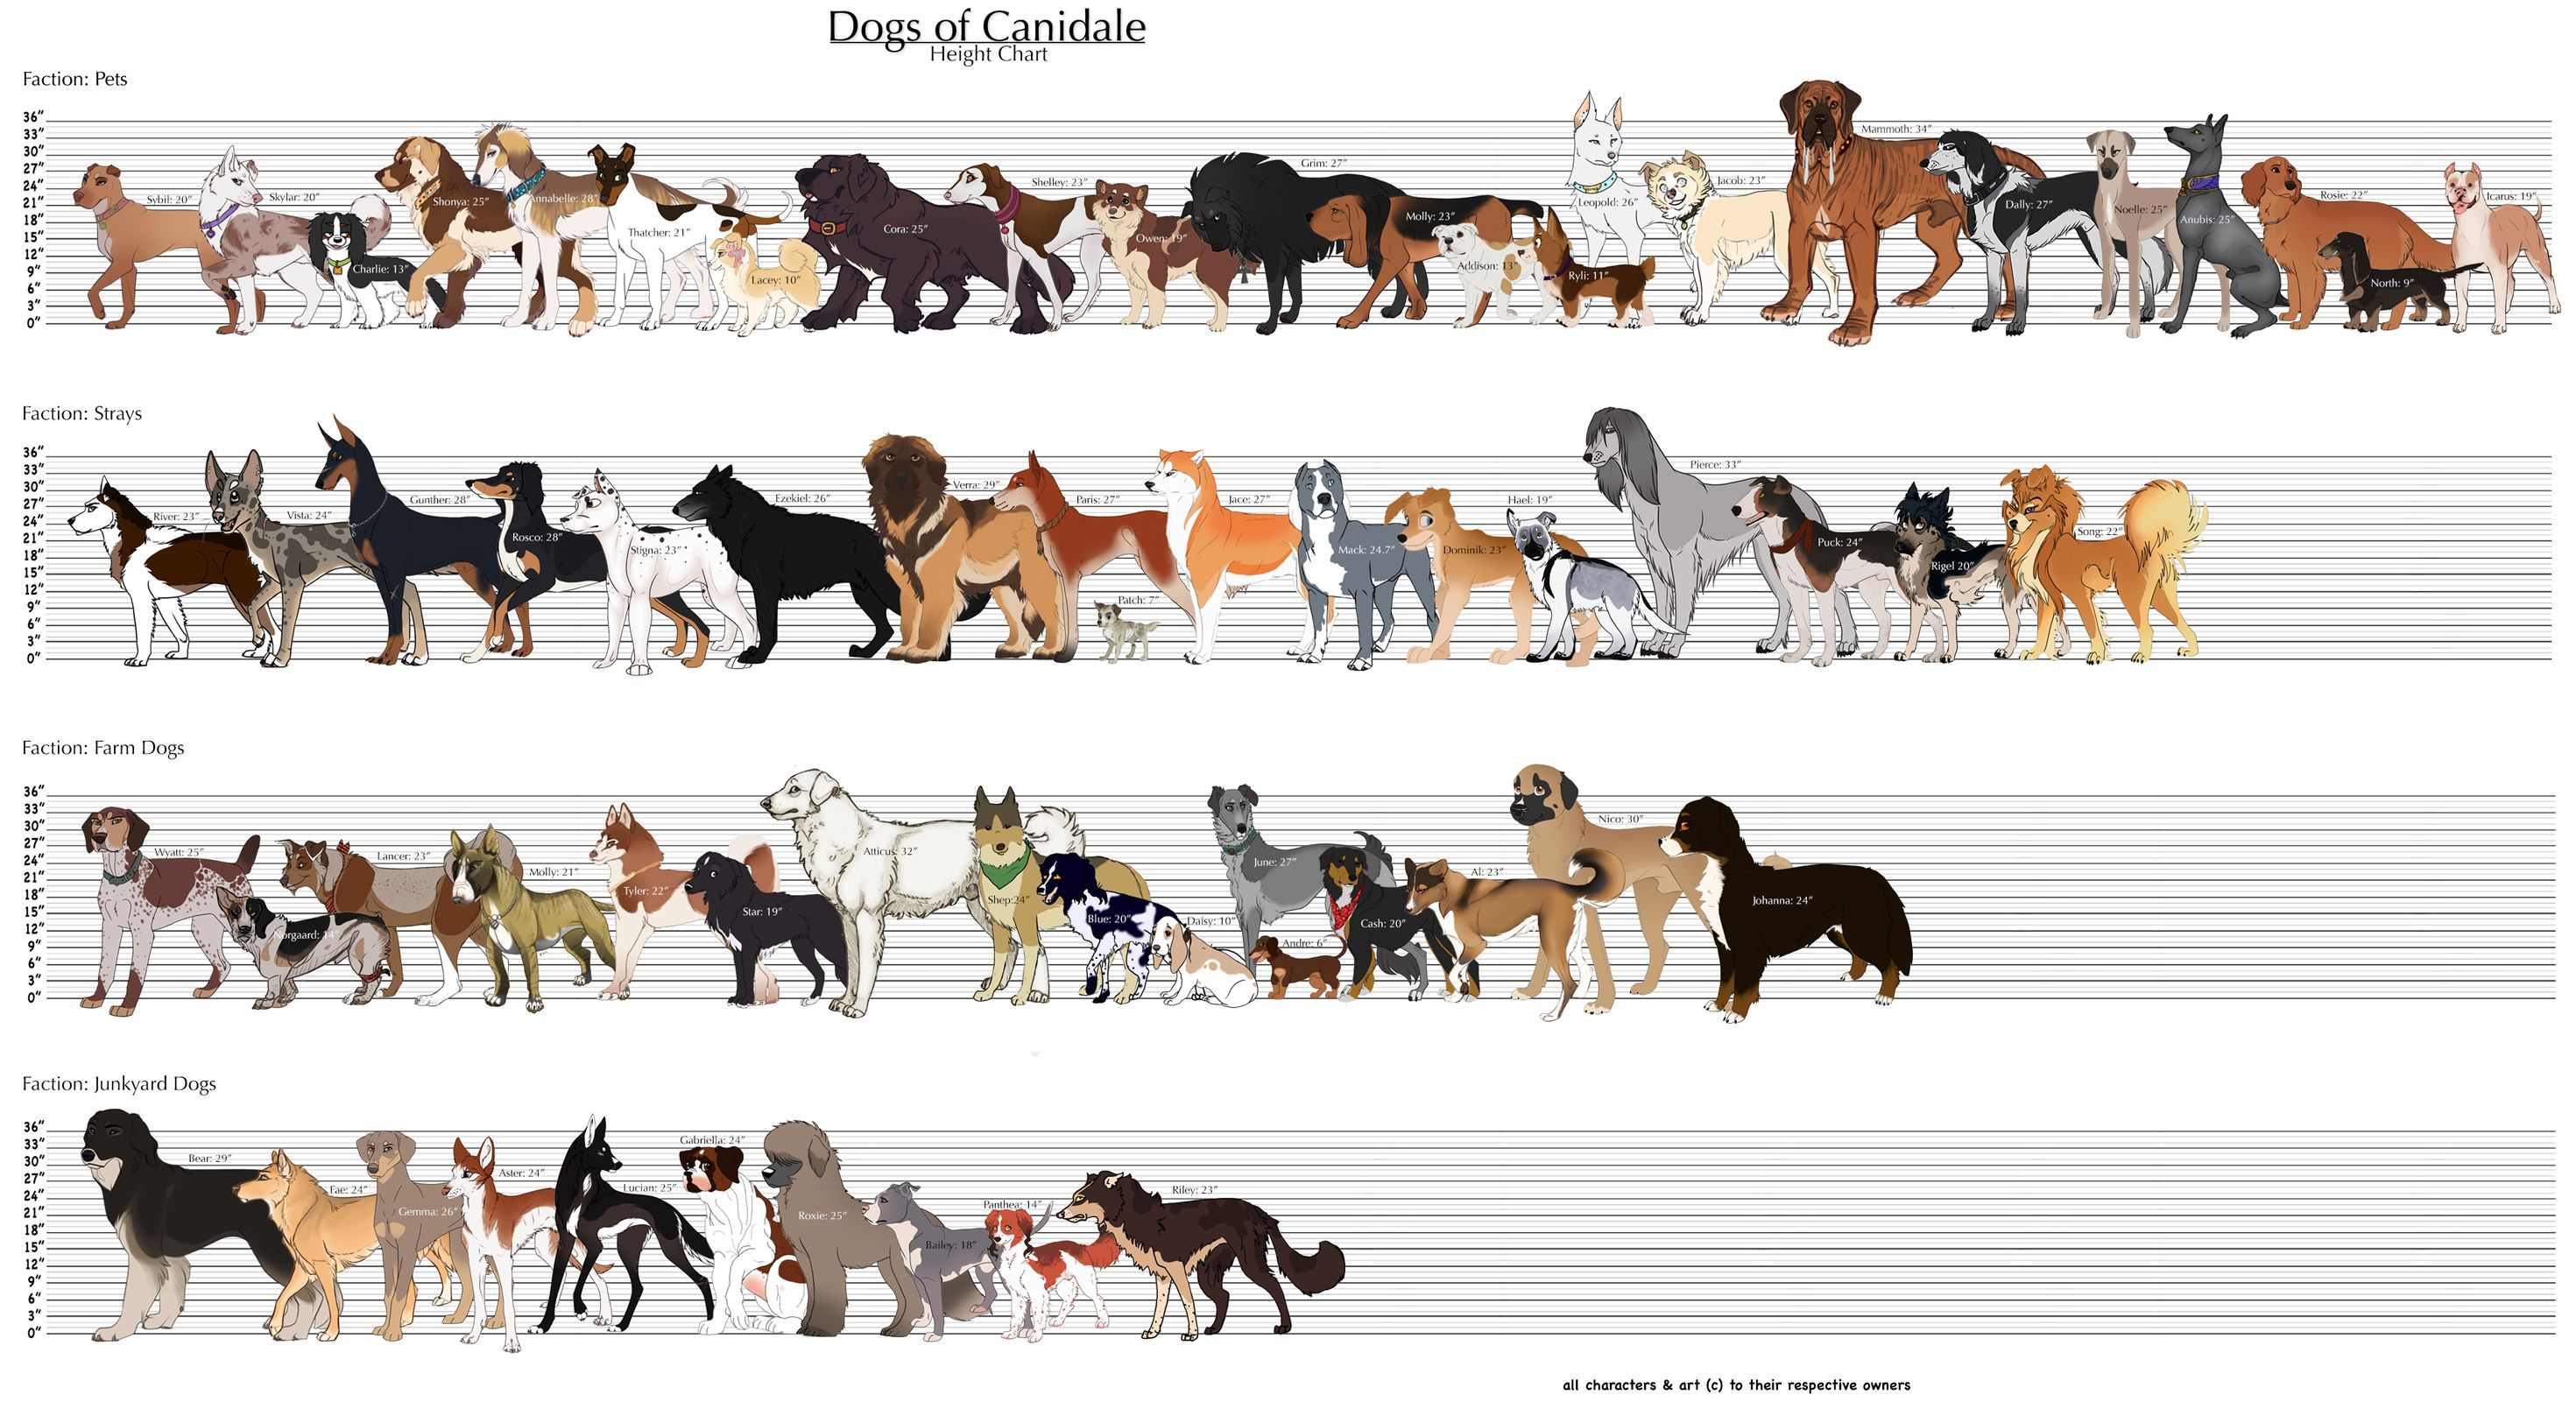 Obviously these are fictional dogs, but could use design